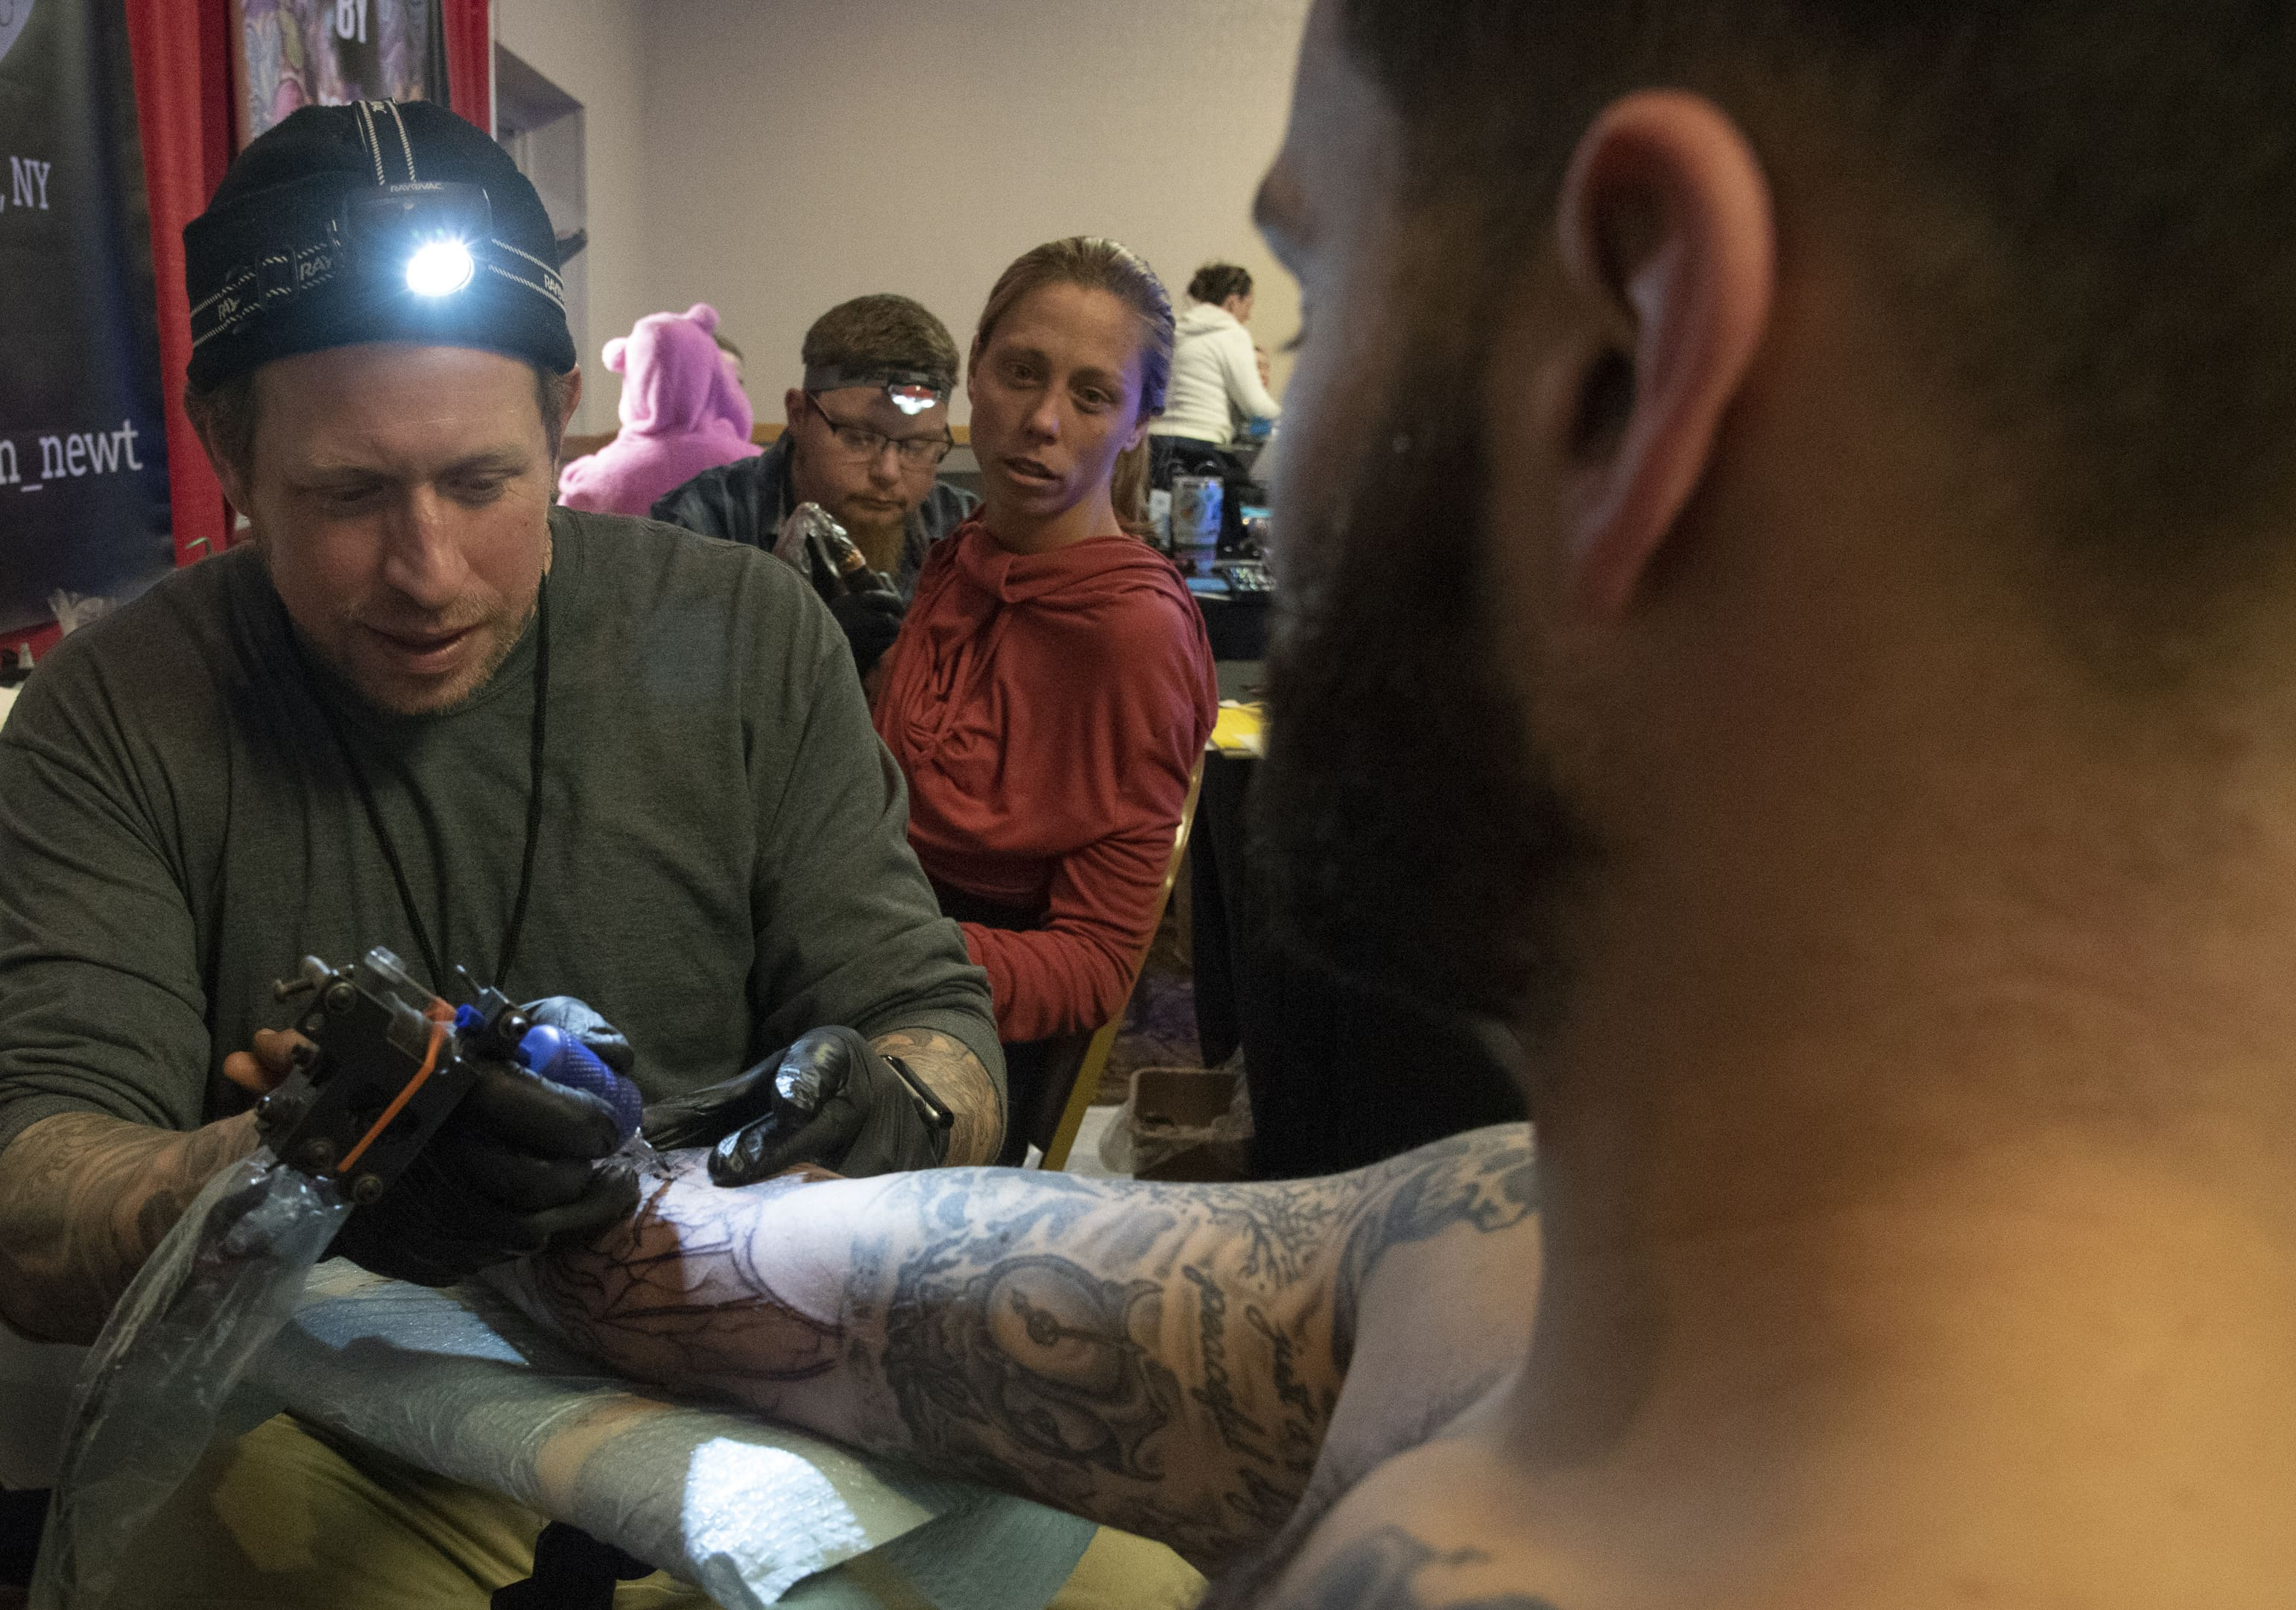 Tattoo artist Thomas Kelly tattoos Robert Vivenzio at the AM-JAM Tattoo Expo on Saturday. (Photo by Lucas Hans)